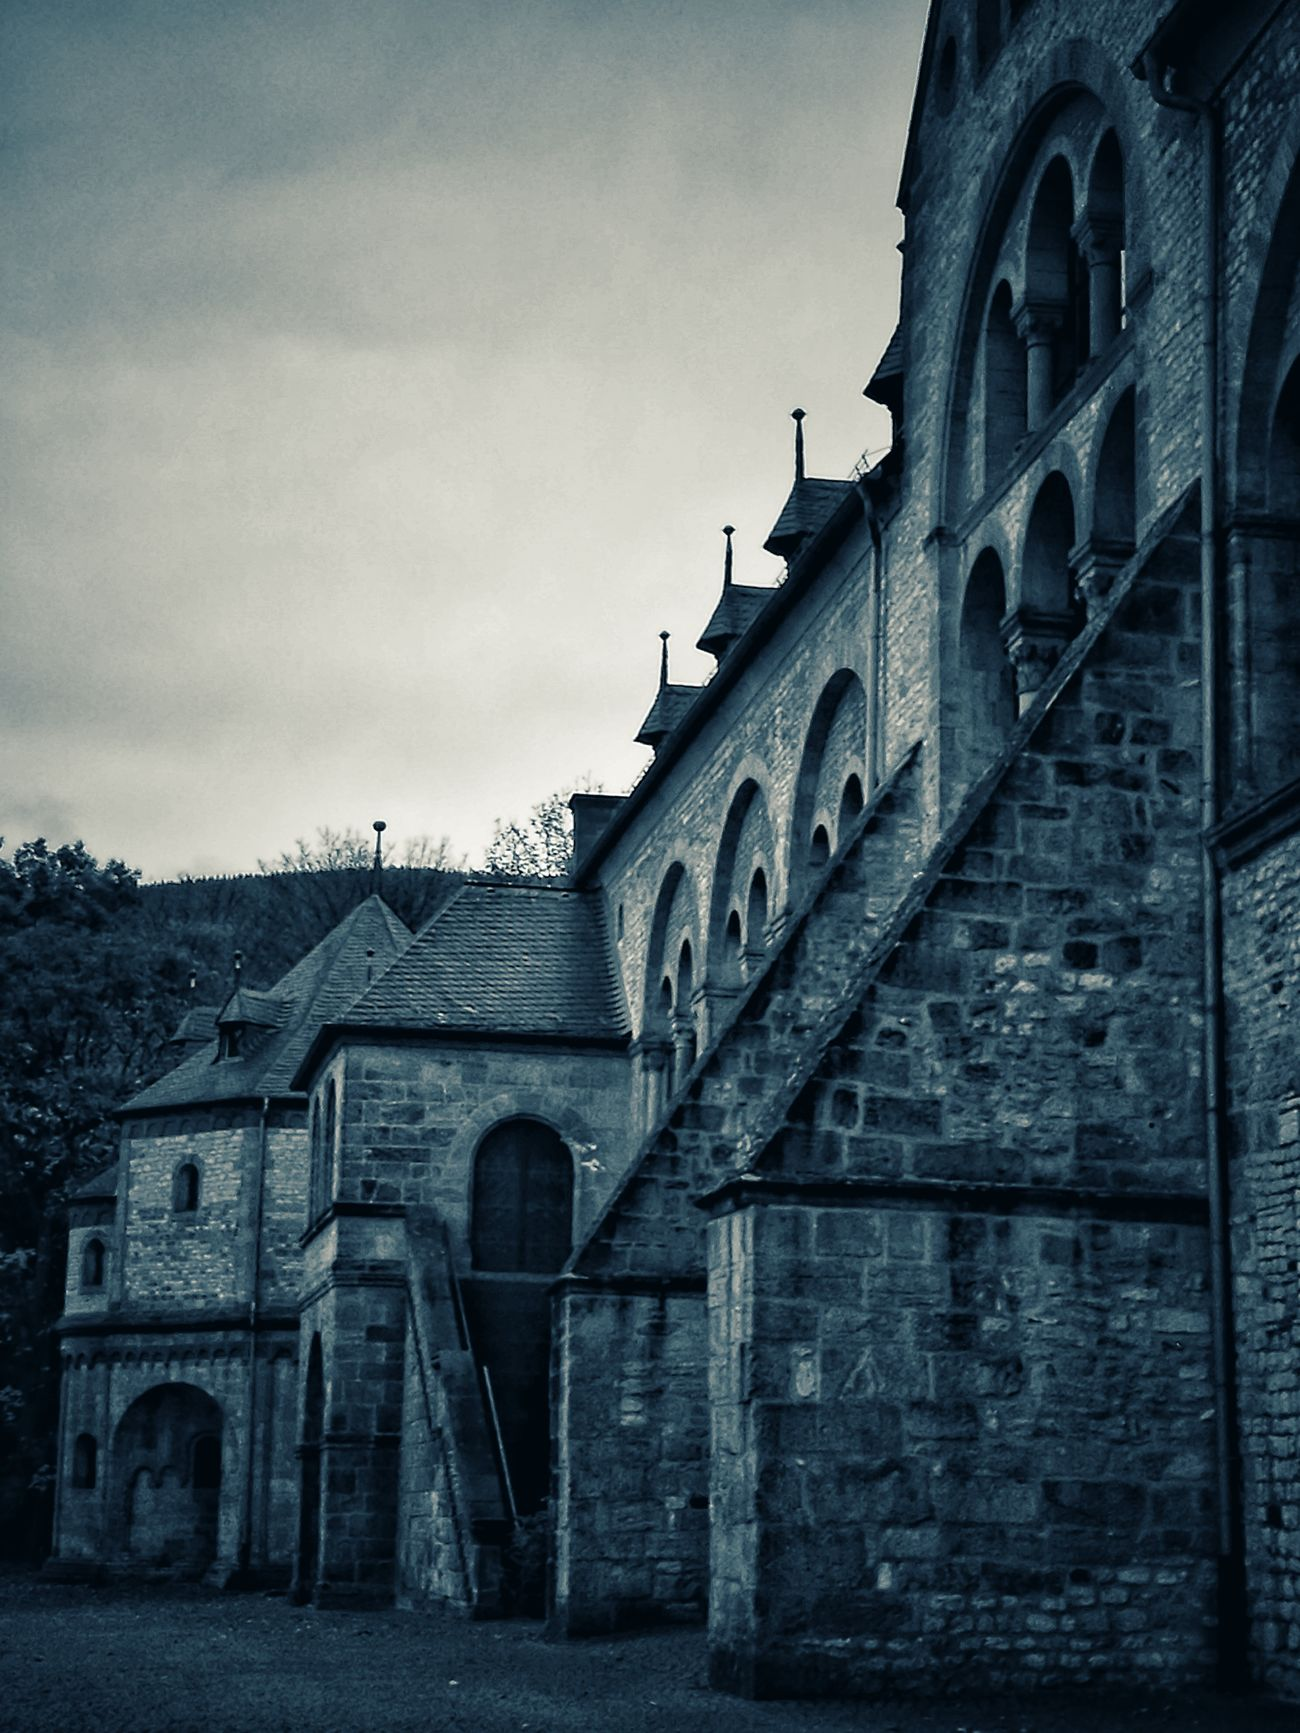 Architecture Building Exterior Built Structure Sky Outdoors No People Day Goslar Monochrome Photography